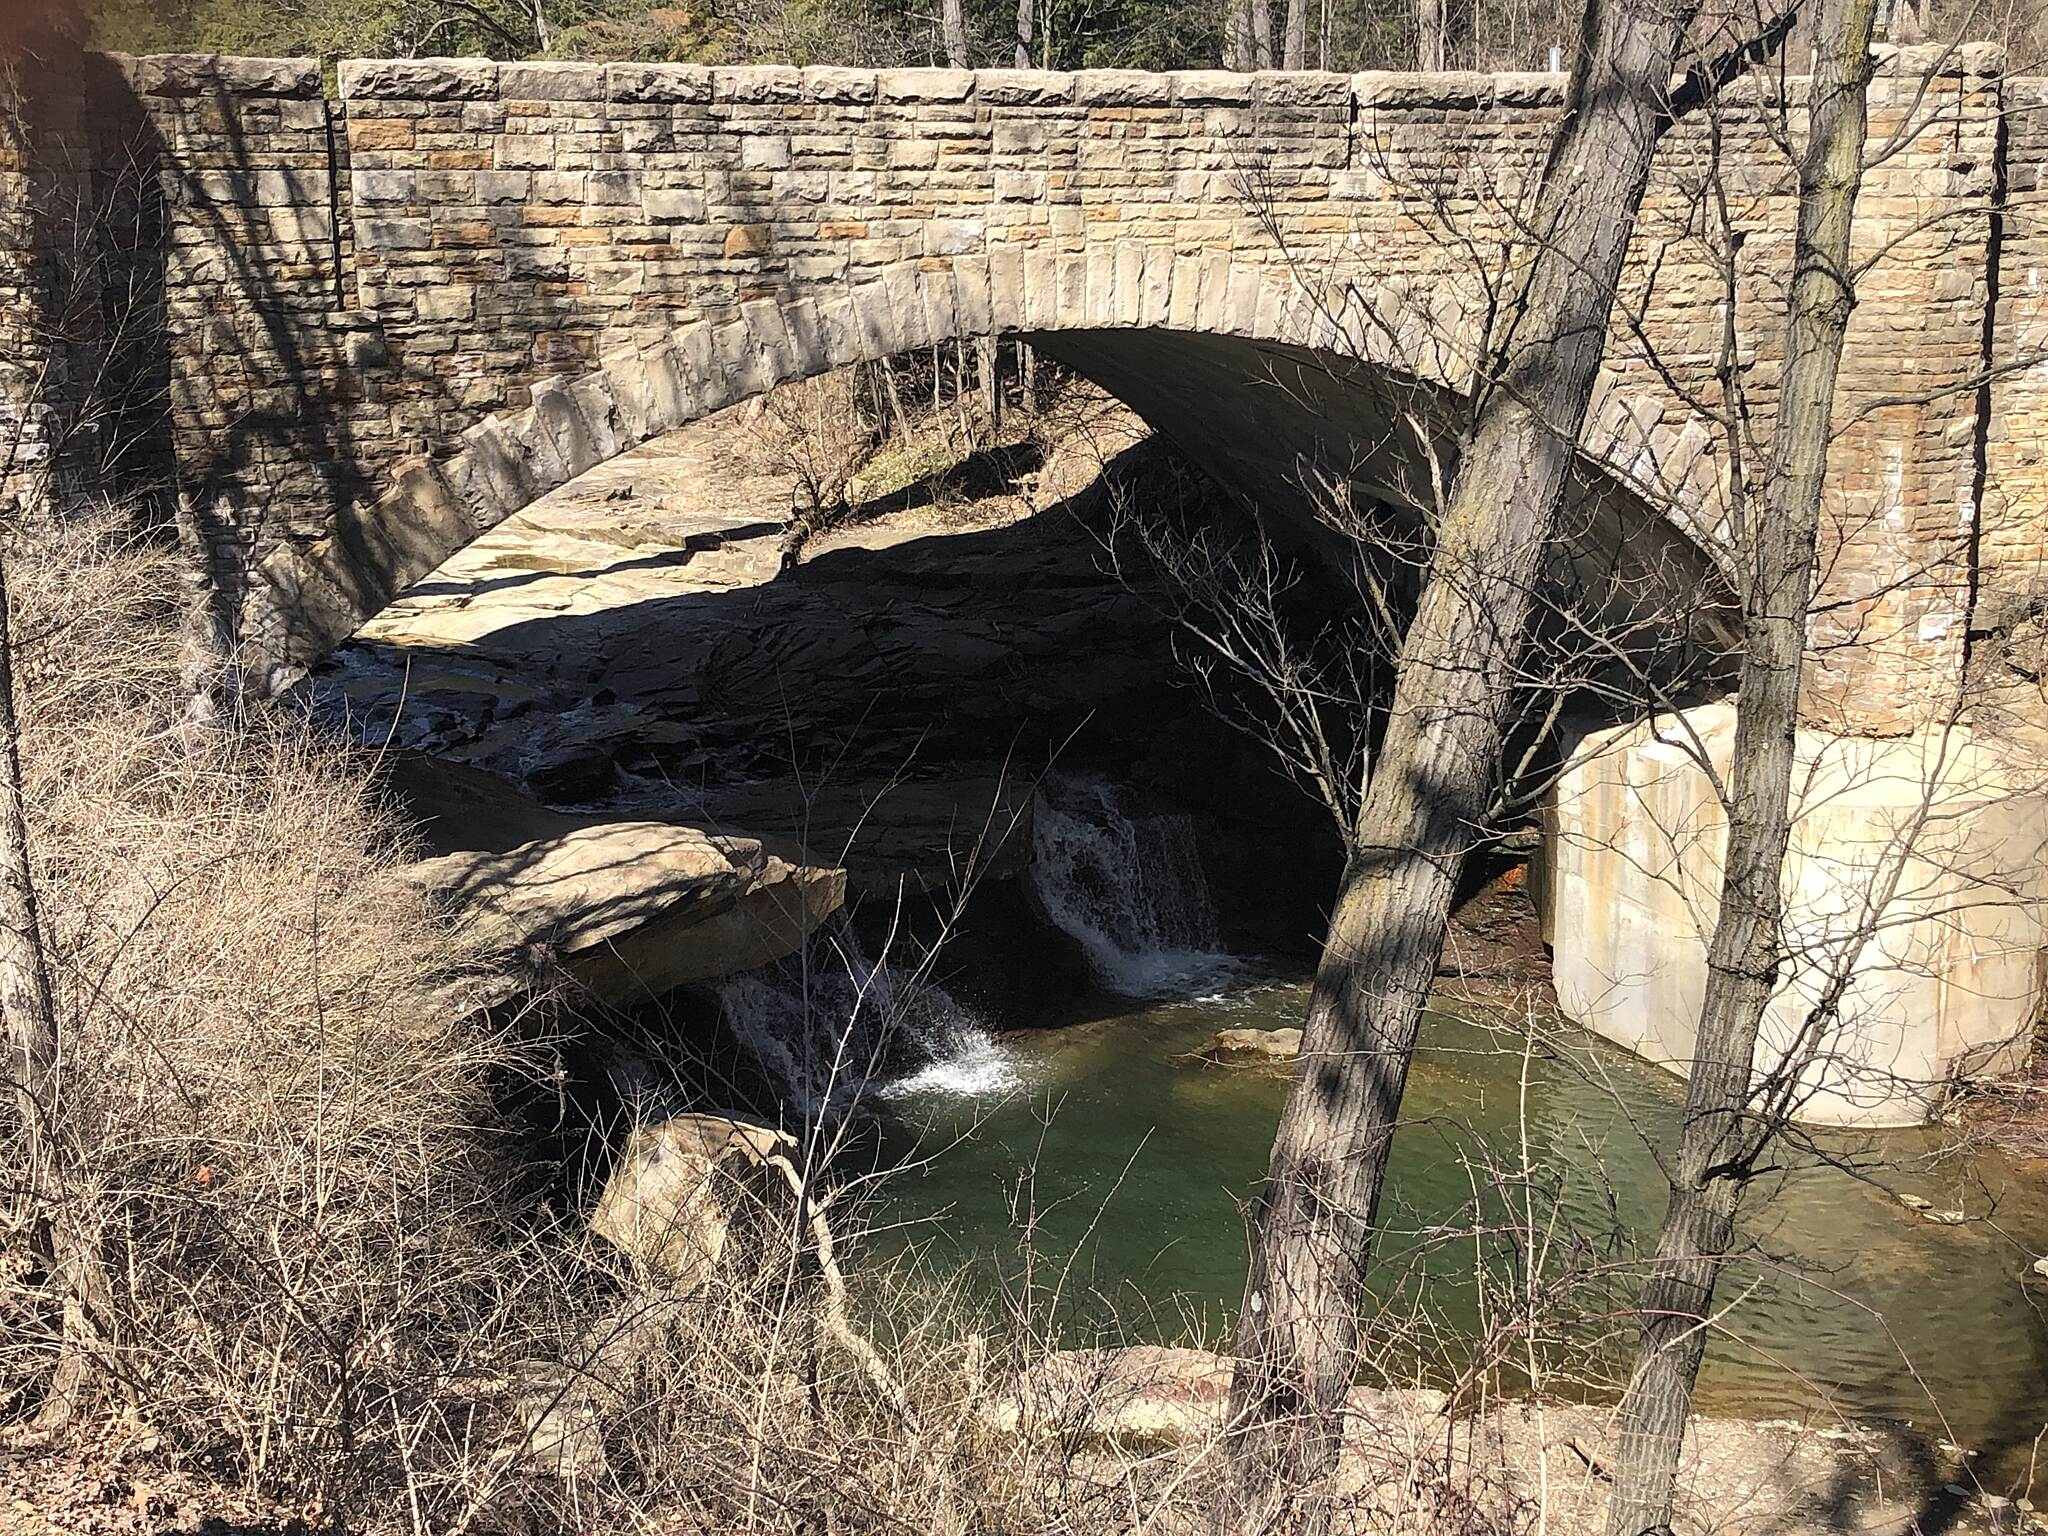 Brecksville Reservation All Purpose Trail Chippewa Road (Ohio Rt. 82) Bridge From a scenic overlook you can view the Chippewa Creek Gorge as it passes under State Route 82 in Brecksville, Ohio.  March 27, 2019.